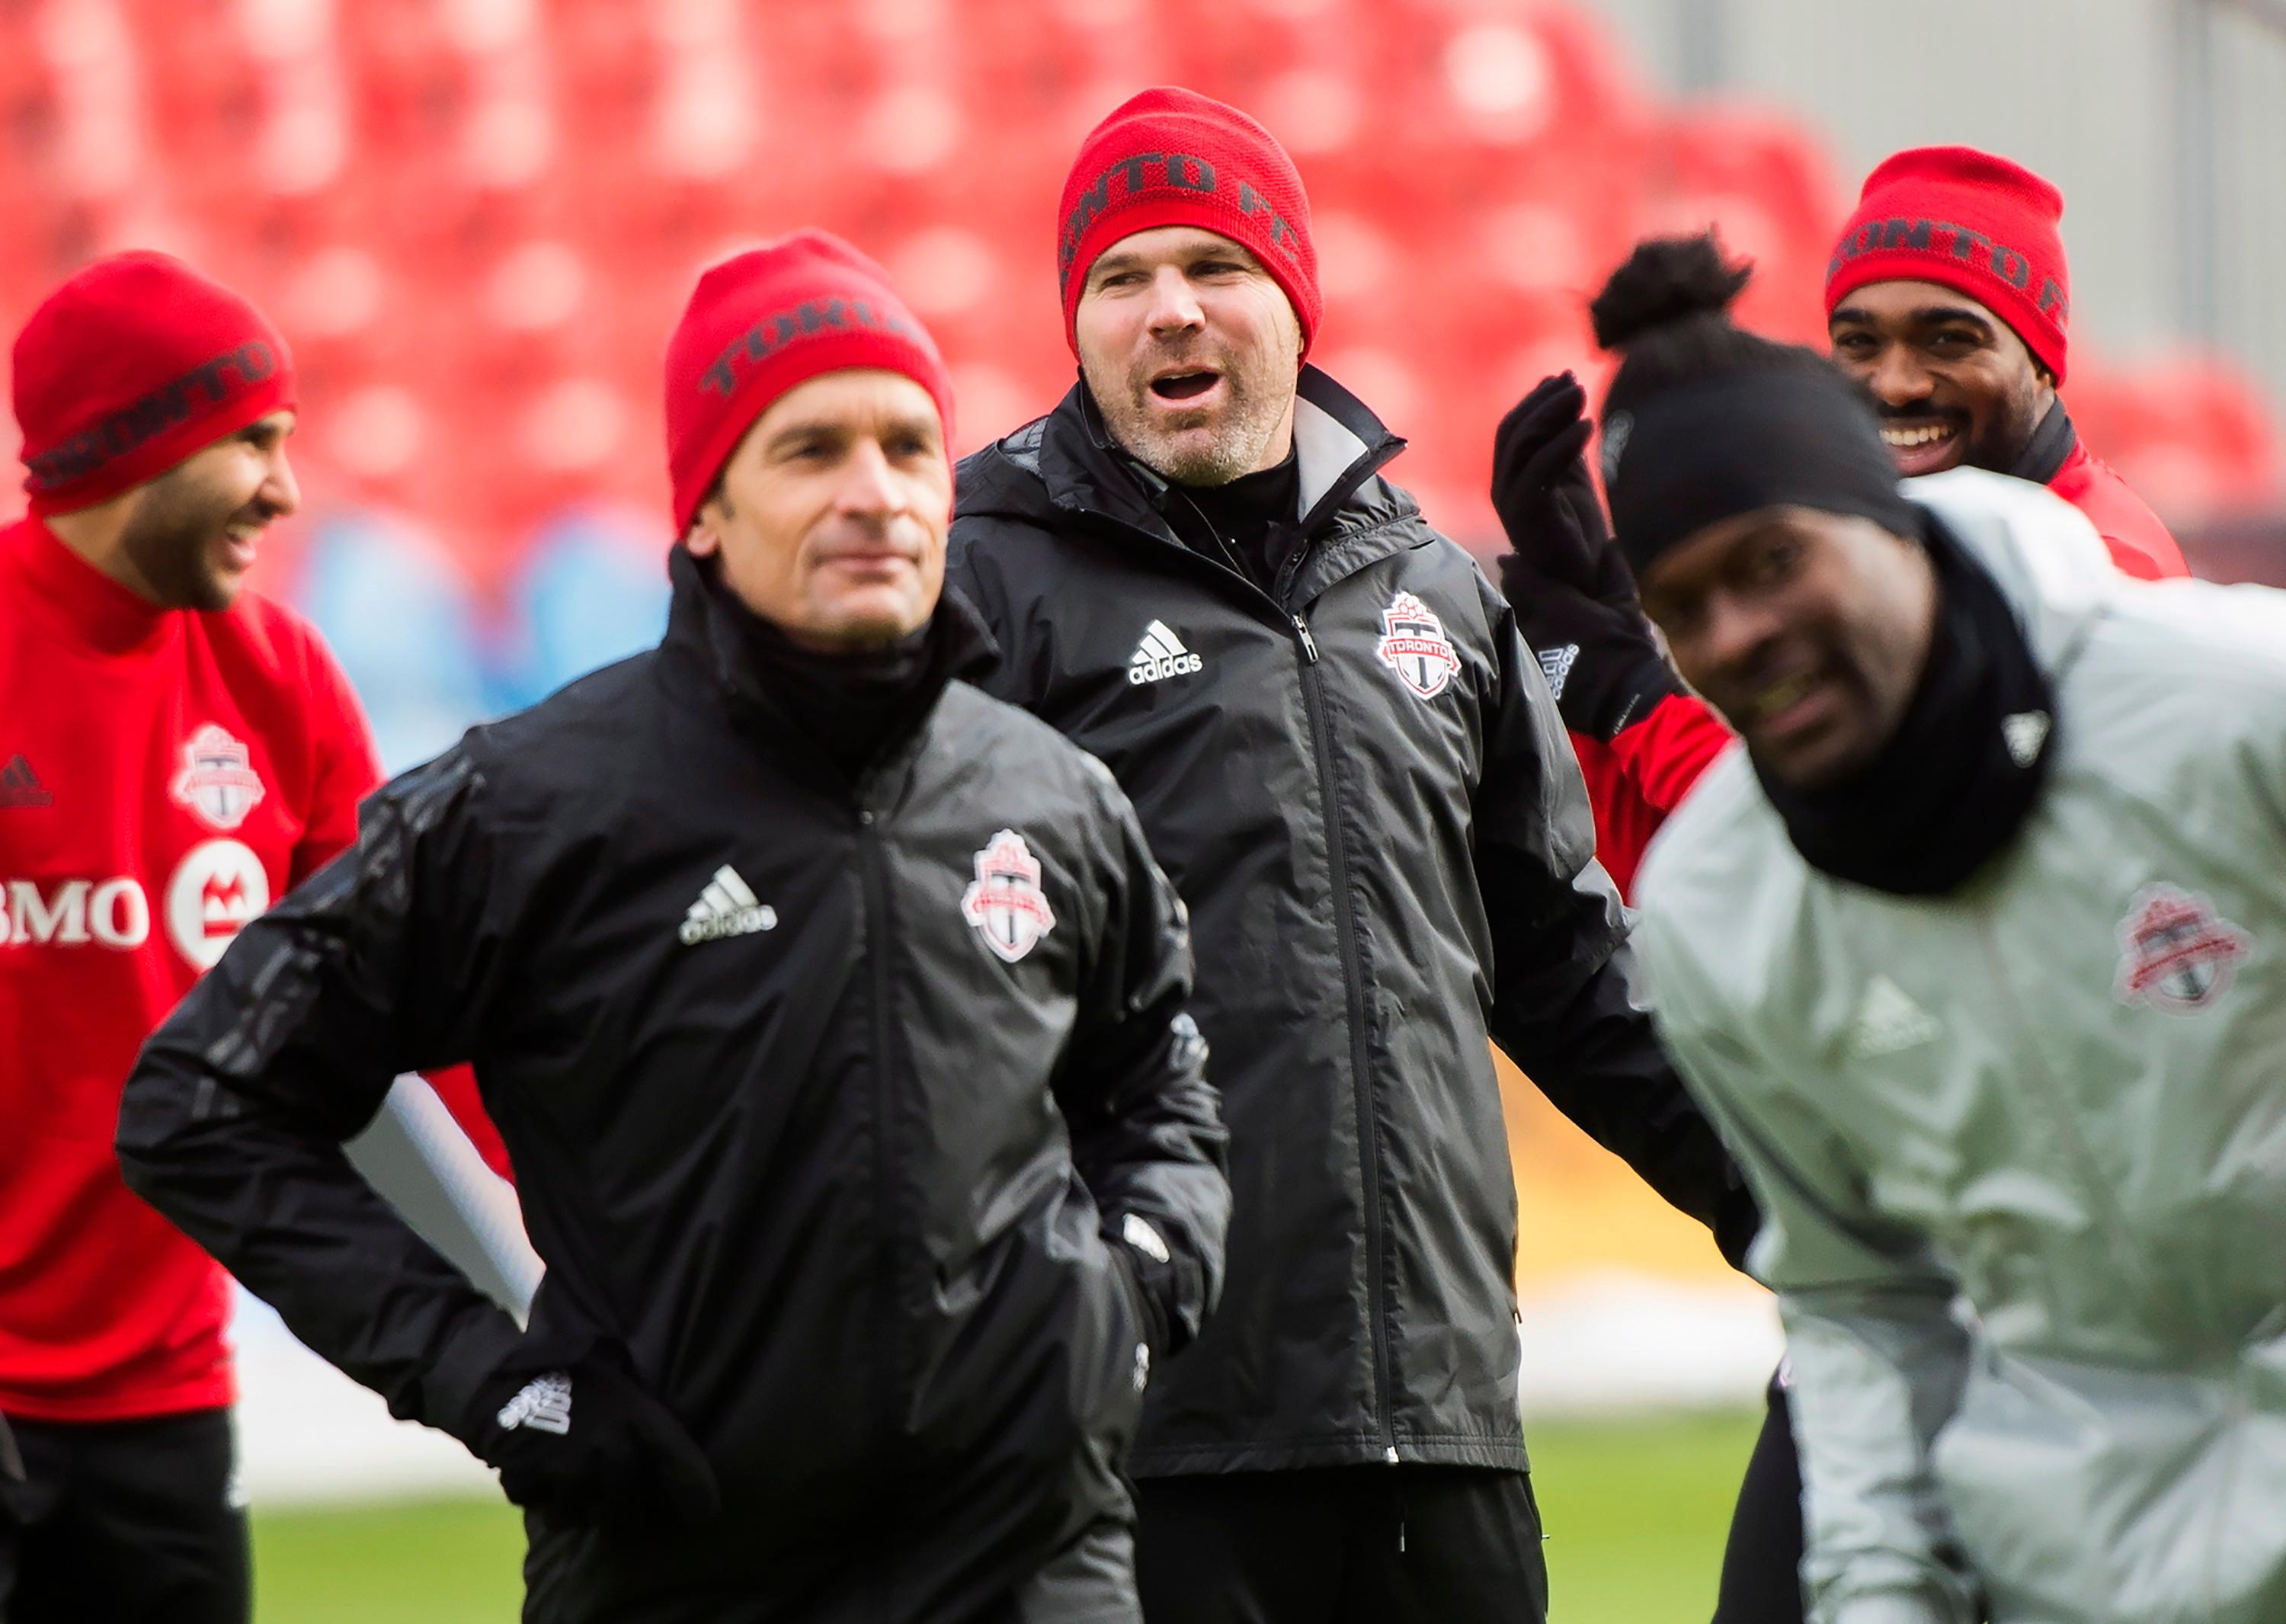 Toronto FC head coach Greg Vanney, center, jokes around during practice ahead of the MLS Cup soccer final against the Seattle Sounders, in Toronto, Friday, Dec. 8, 2017. (Nathan Denette/The Canadian Press via AP)